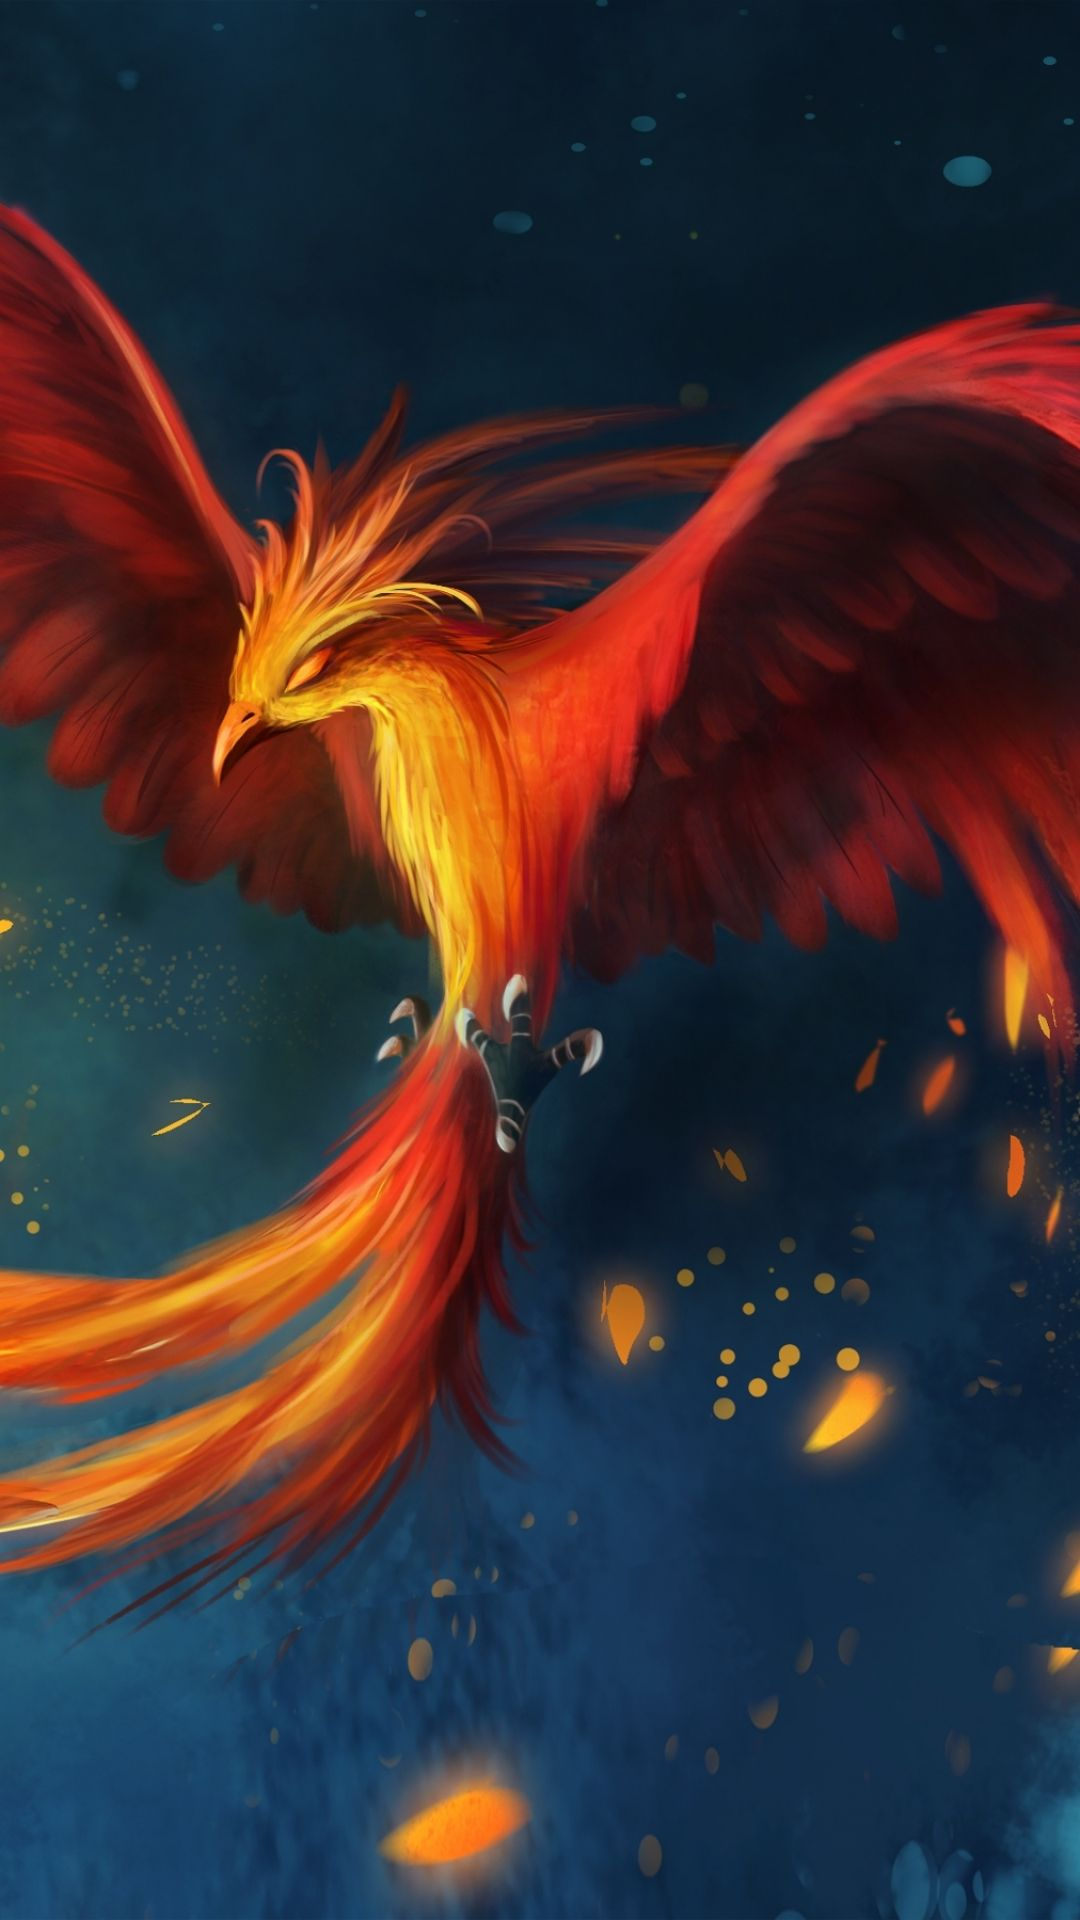 Phoenix Apple/iPhone 6 Plus 1080x1920 9 Wallpapers